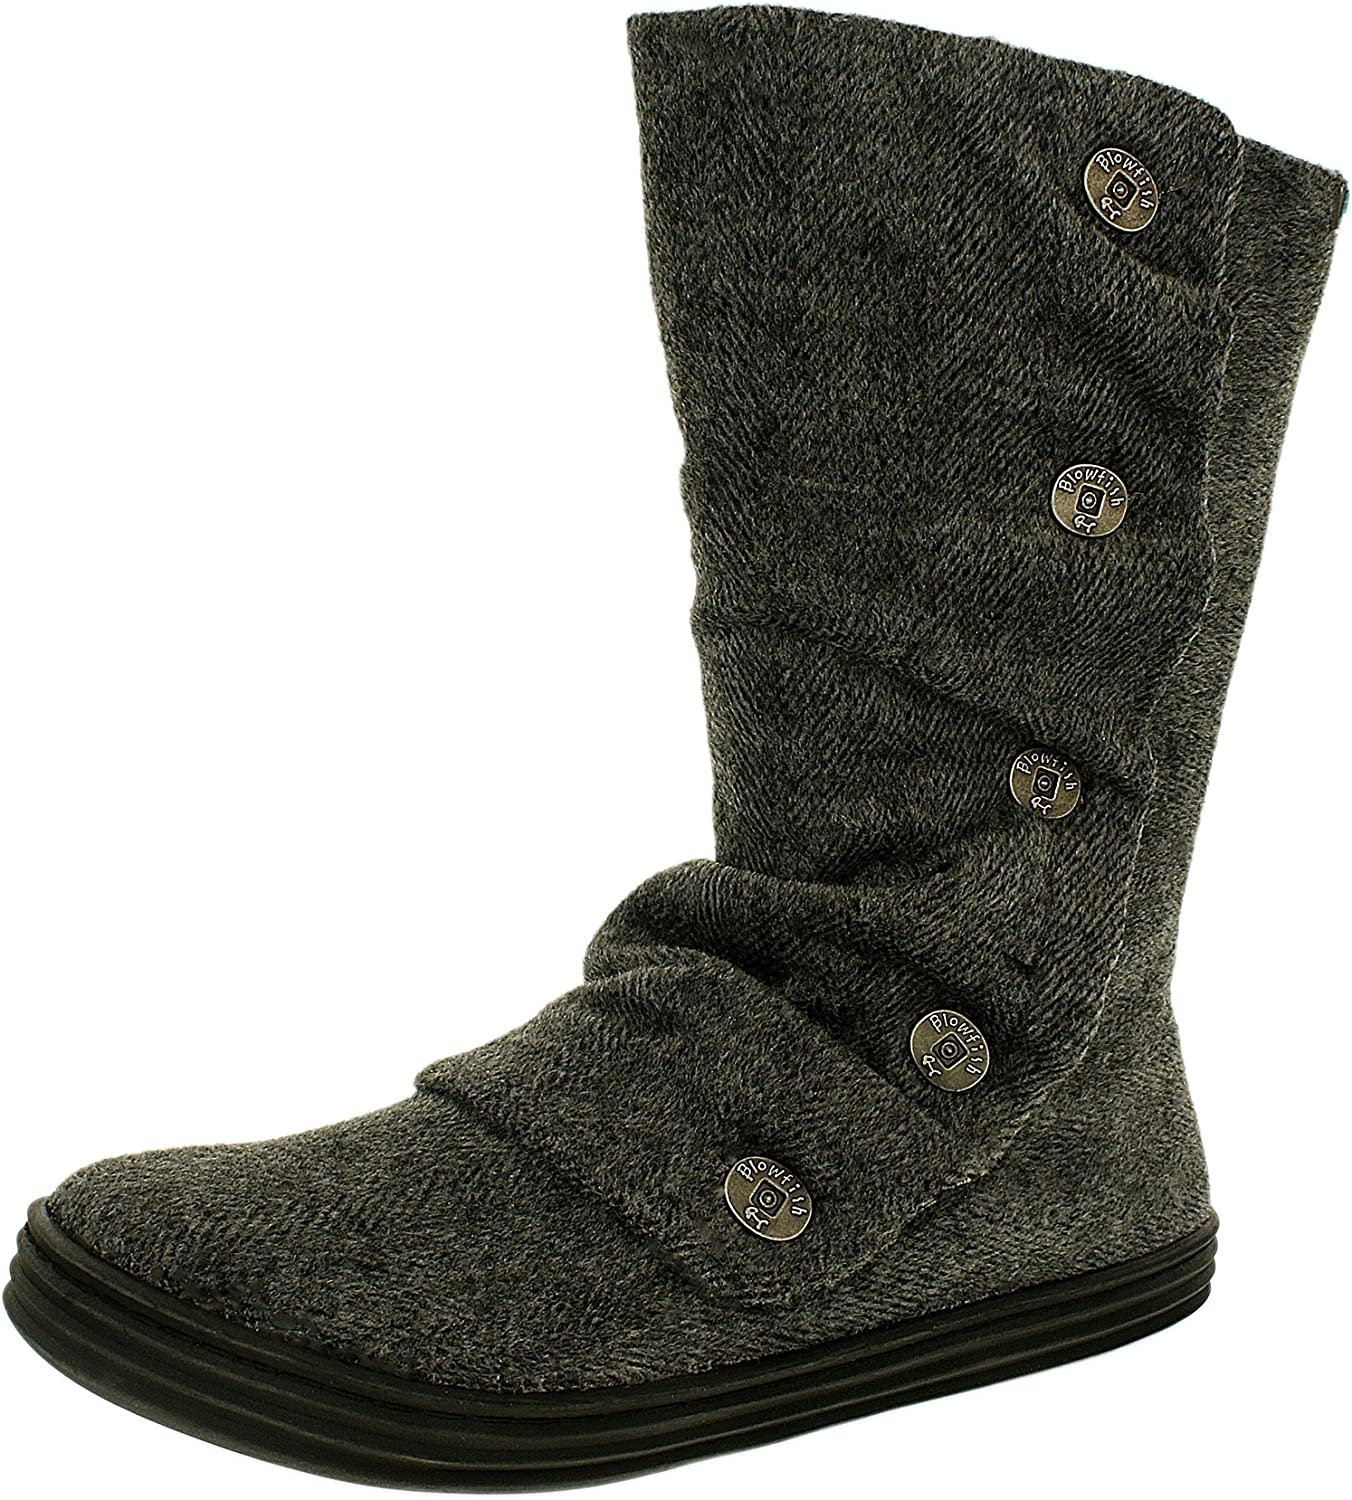 Blowfish Woherren Rammish Flannel Mid-Calf Fabric Stiefel Stiefel  Online-Rabatt